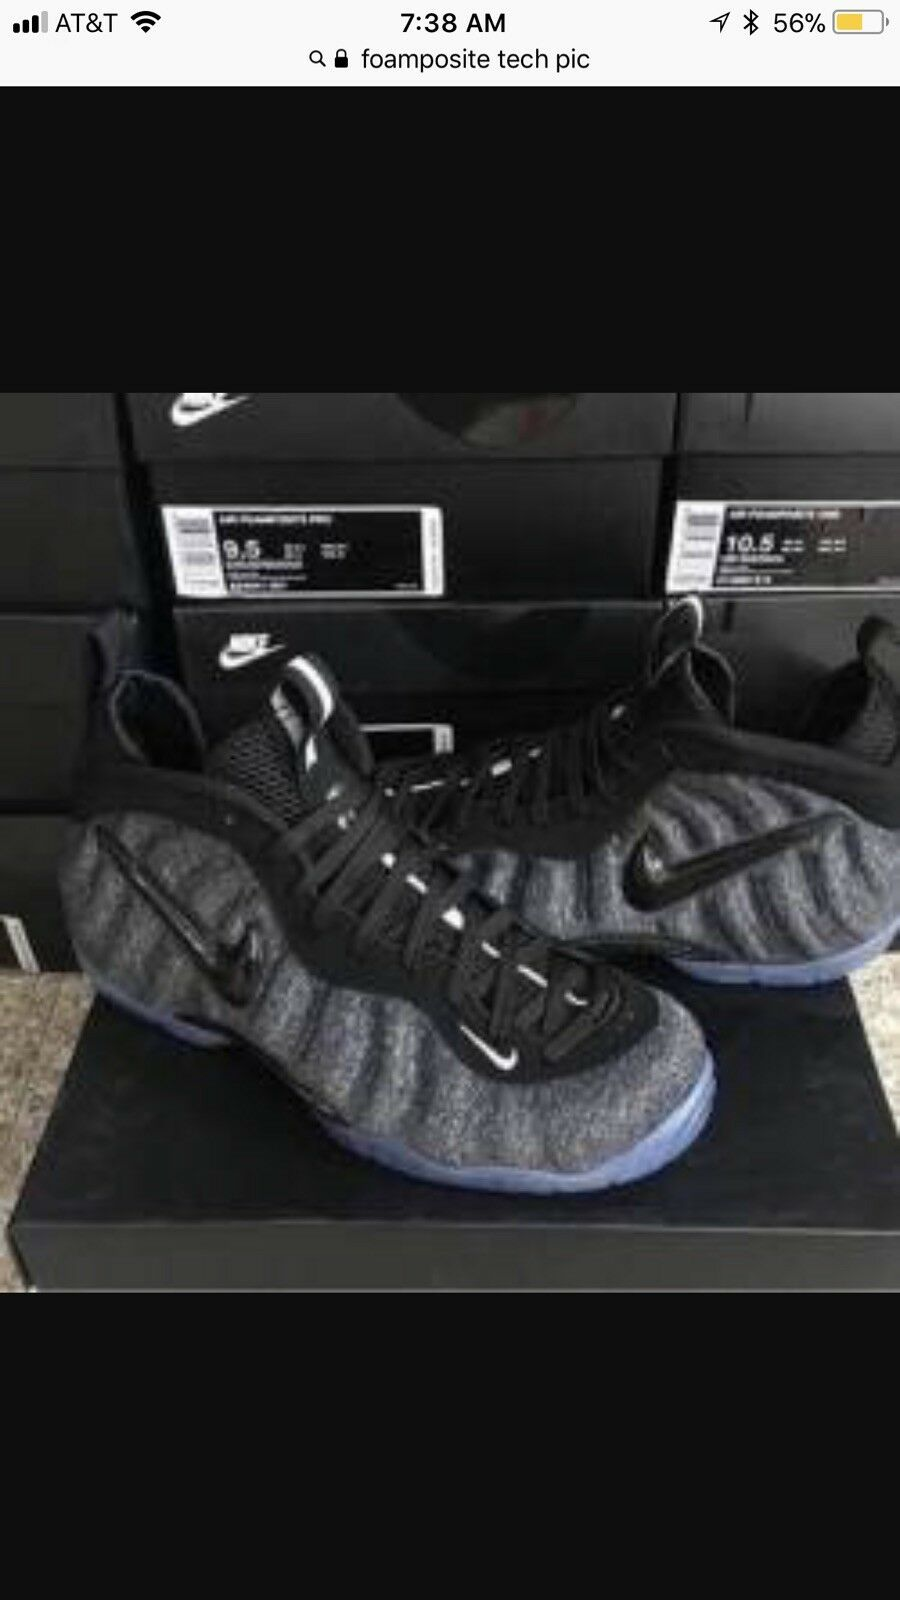 NIKE AIR FOAMPOSITE PRO TECH FLEECE WOOL GREY BLACK 624041-007 NEW SIZE 10 The most popular shoes for men and women